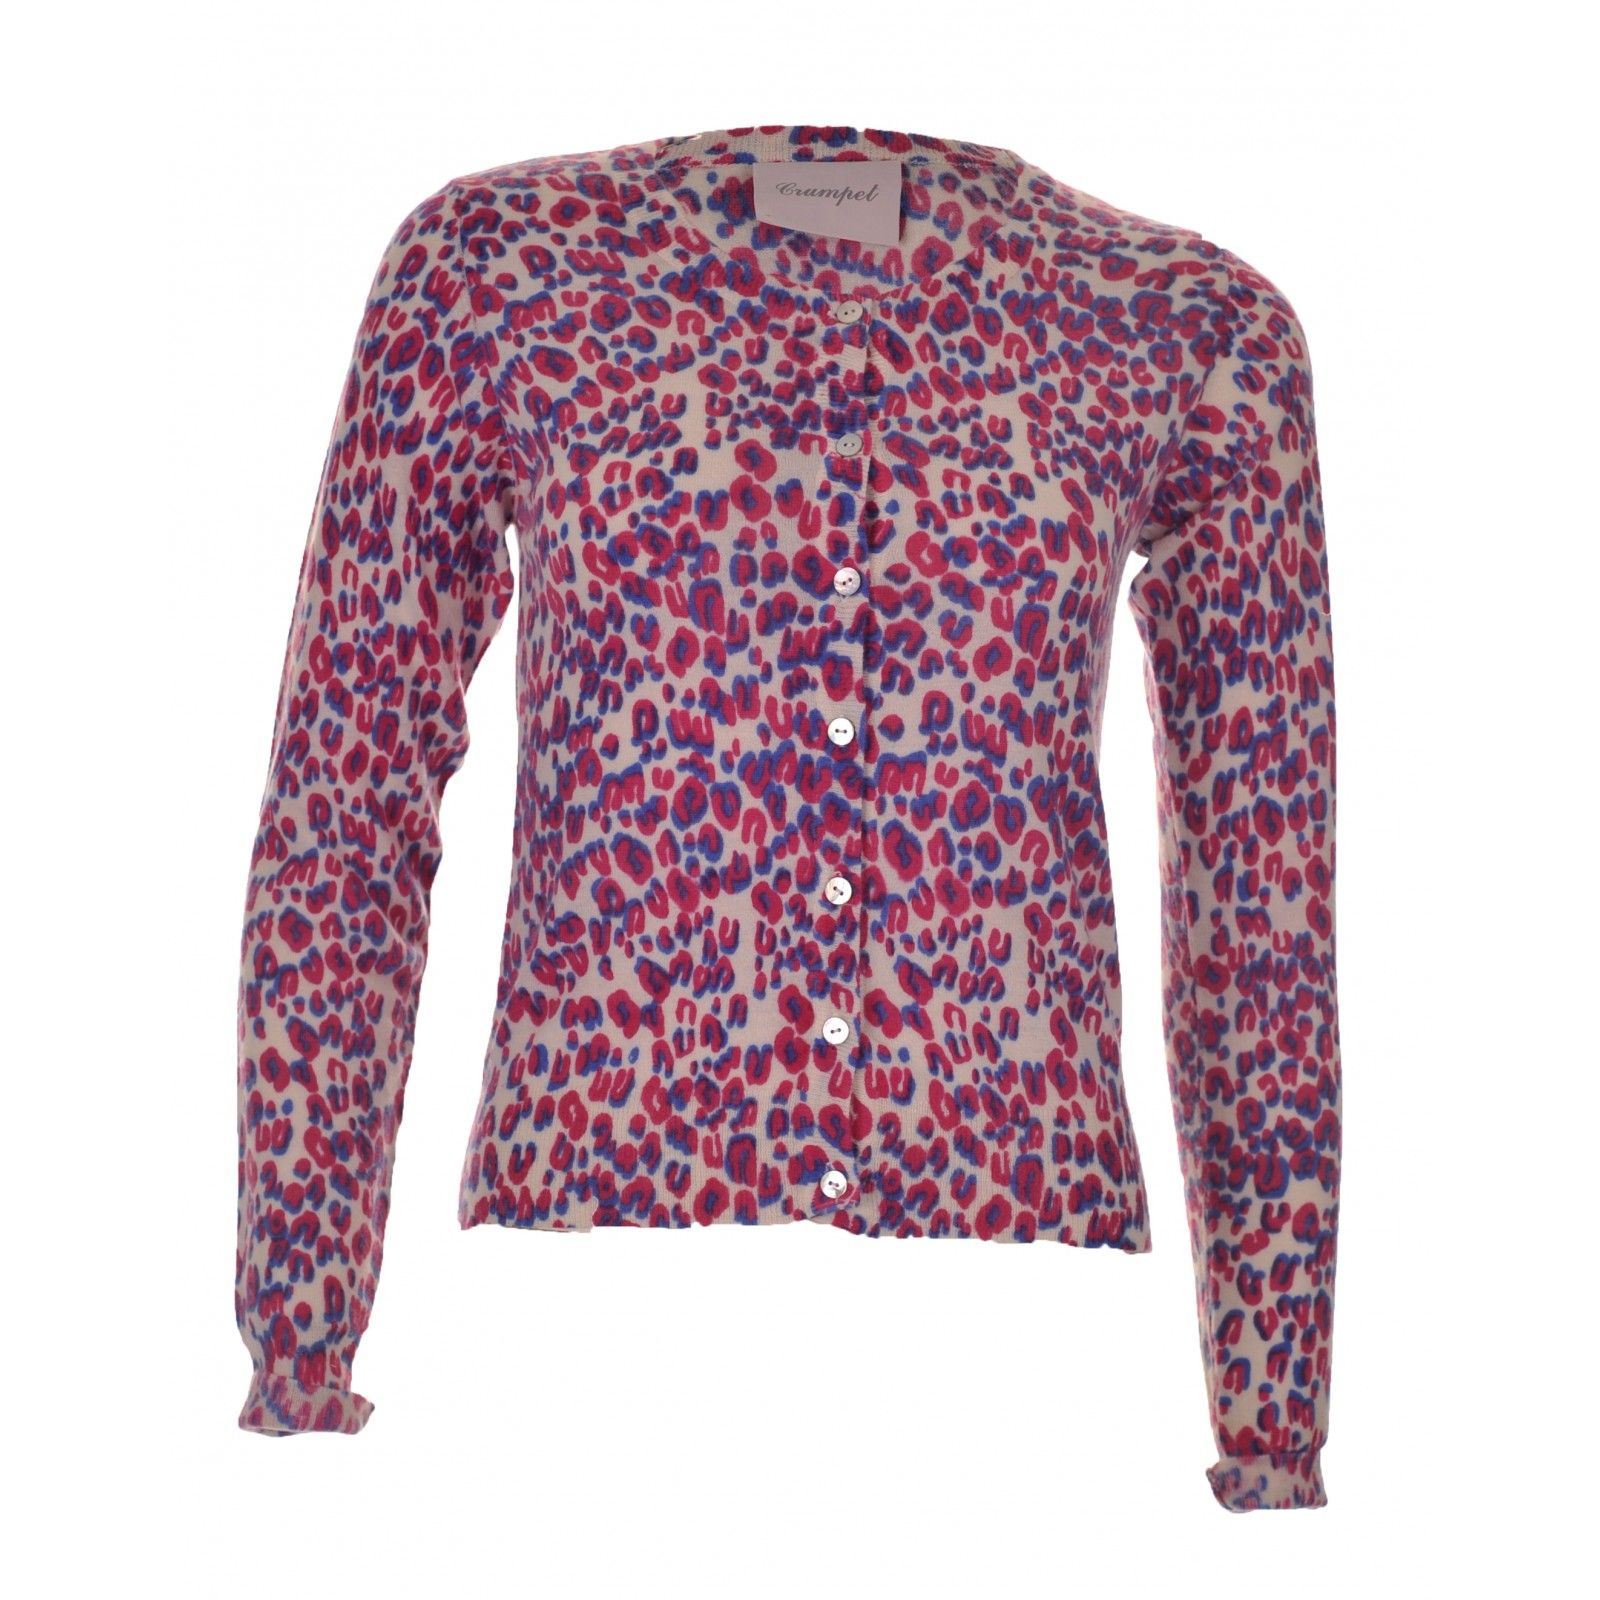 Crumpet cashmere basic day cardigan in pink leopard - £295 http ...